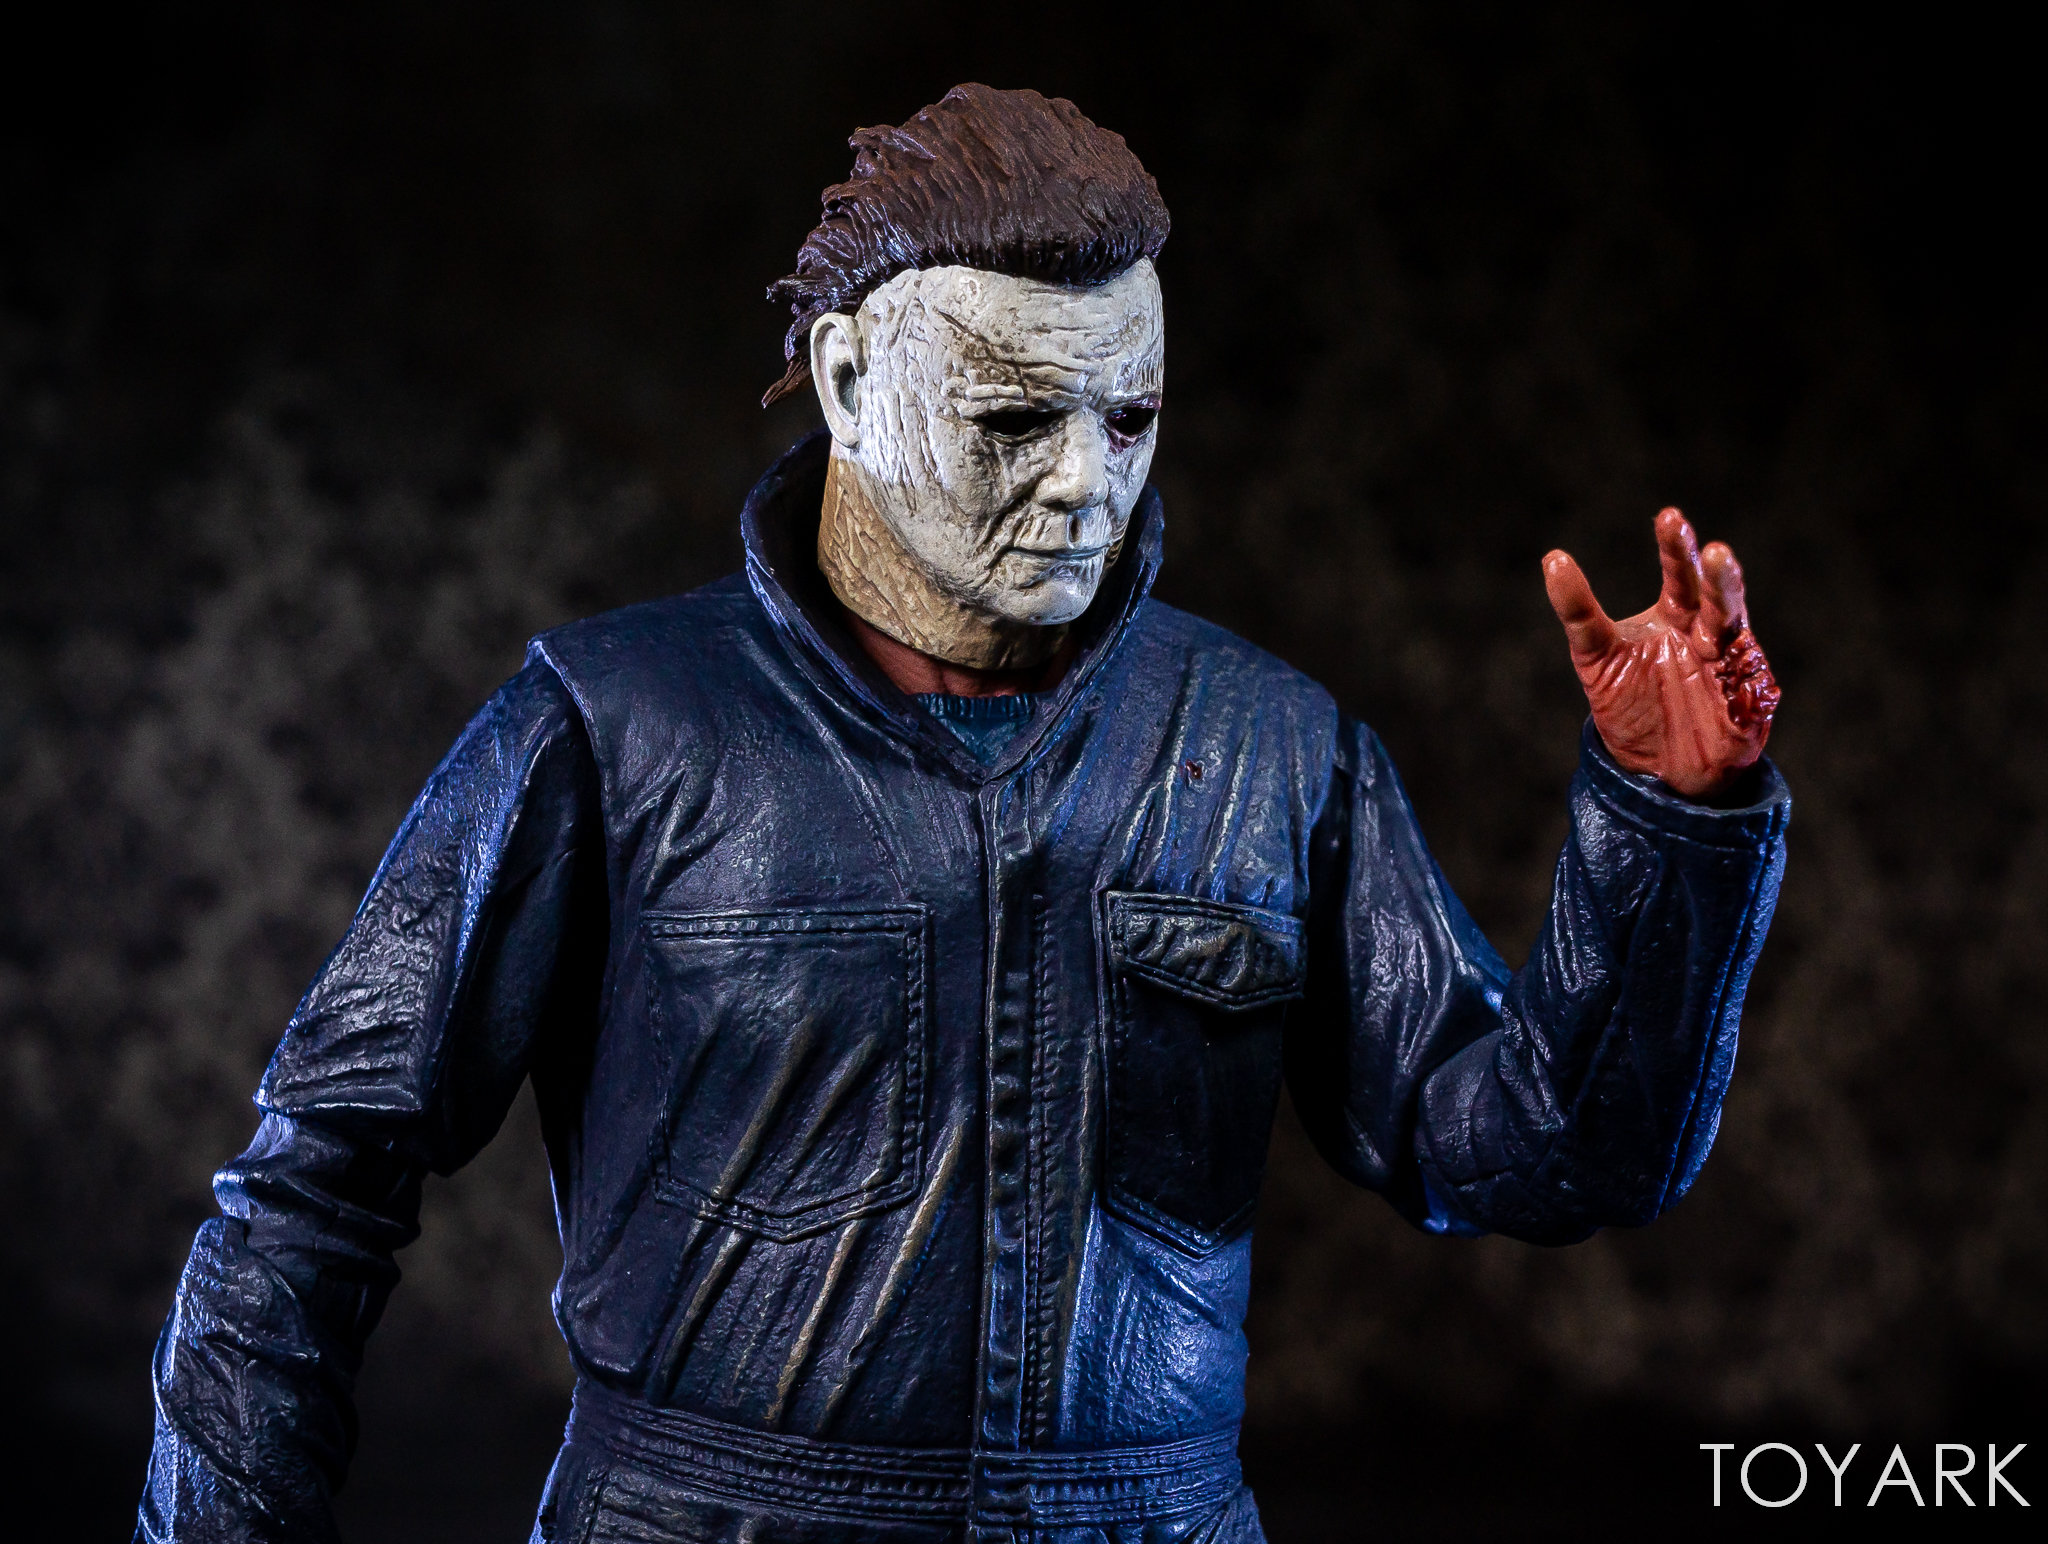 https://news.toyark.com/wp-content/uploads/sites/4/2018/11/Halloween-2018-Michael-Myers-Figure-063.jpg